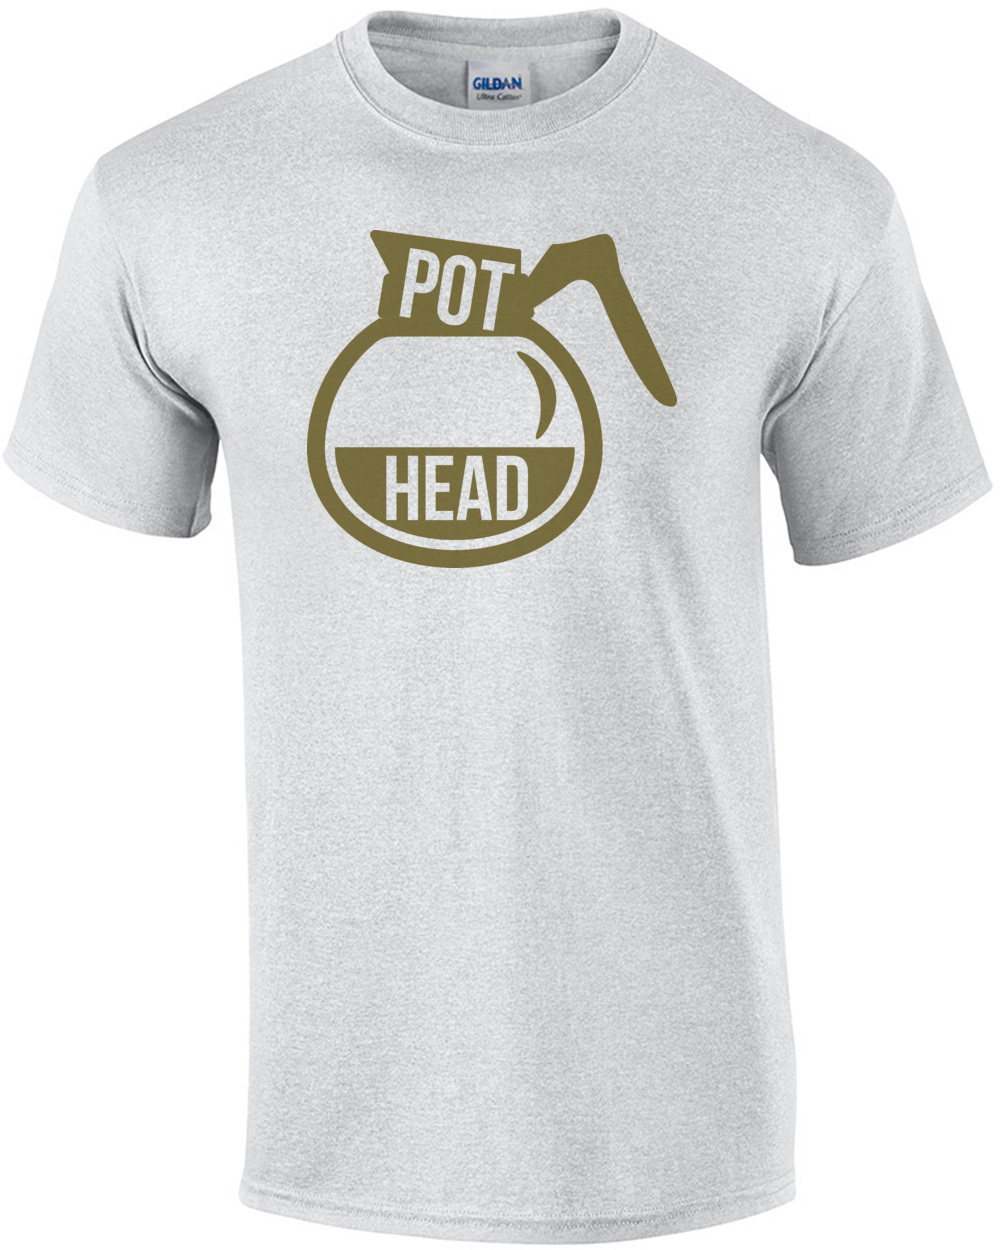 4f96d5b62dd pot-head-coffee-lover-tshirt-mens-regular-ash.jpg